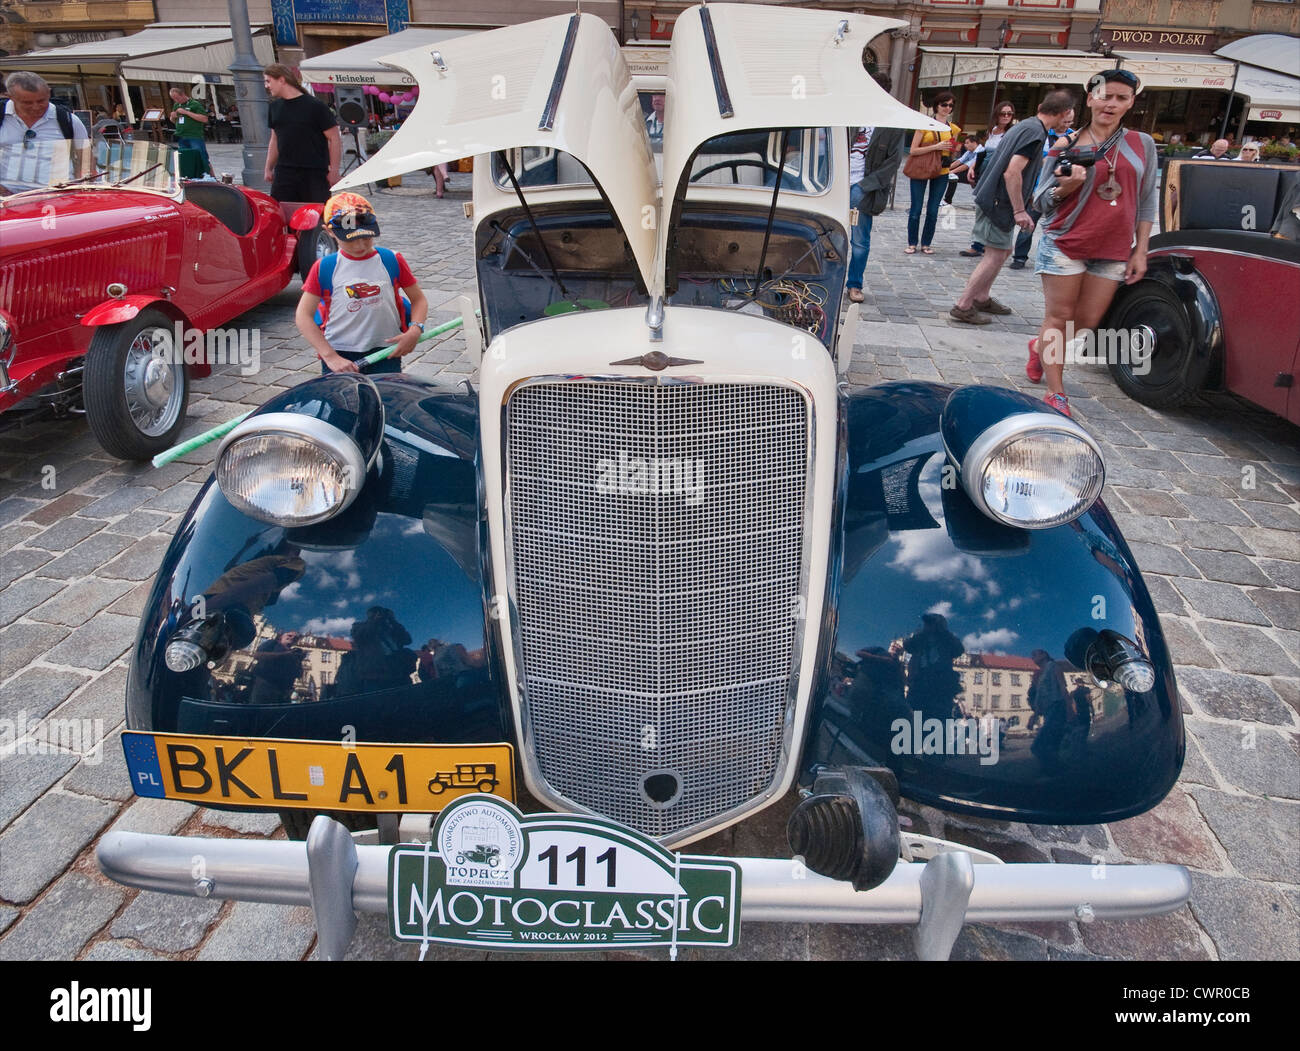 1934 Opel 2.0 L open-top sedan at Motoclassic car show at Rynek (Market Square) in Wroclaw, Lower Silesia, Poland - Stock Image